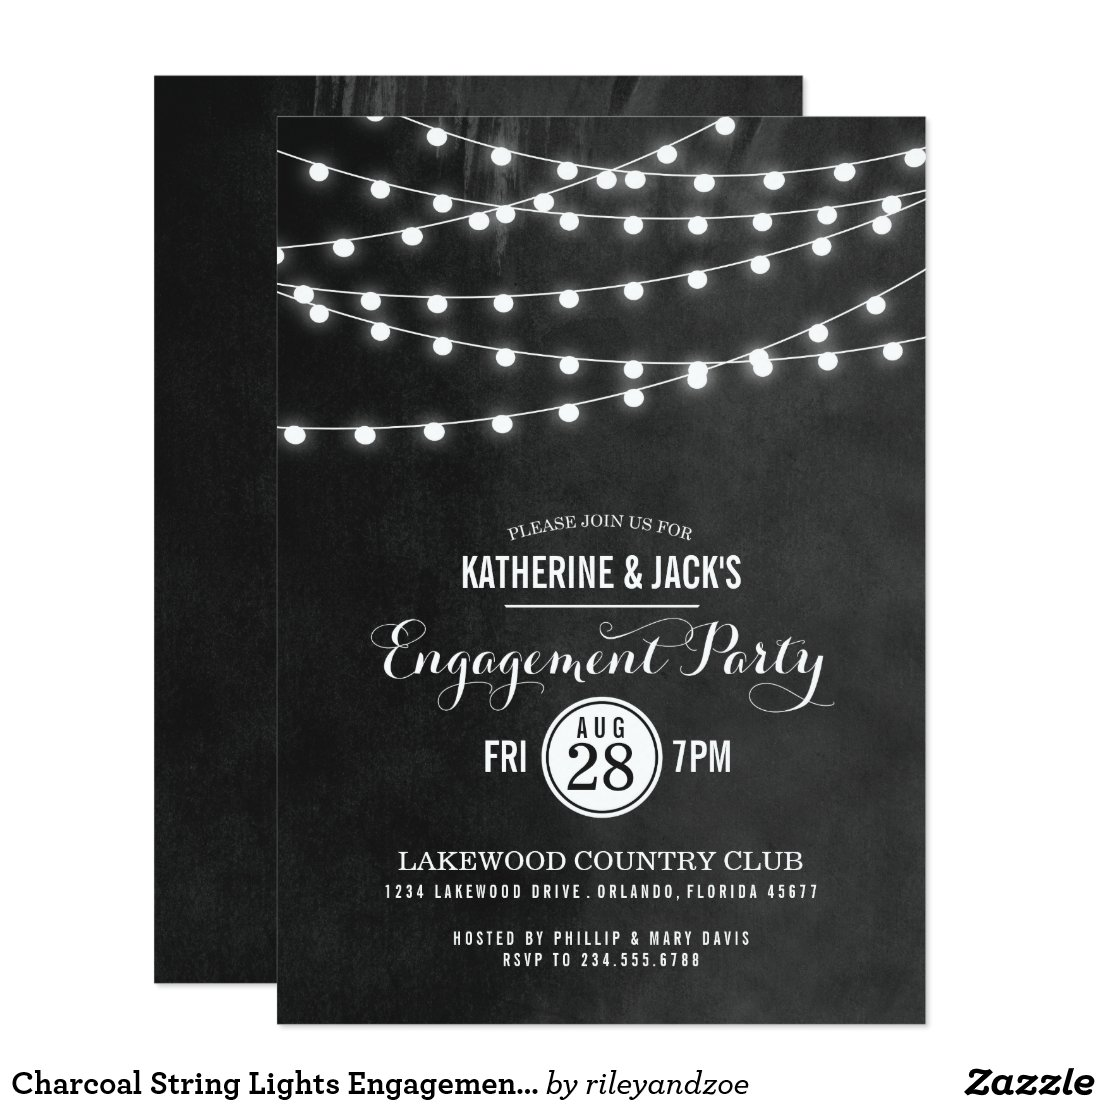 Charcoal String Lights Engagement Party Invitation